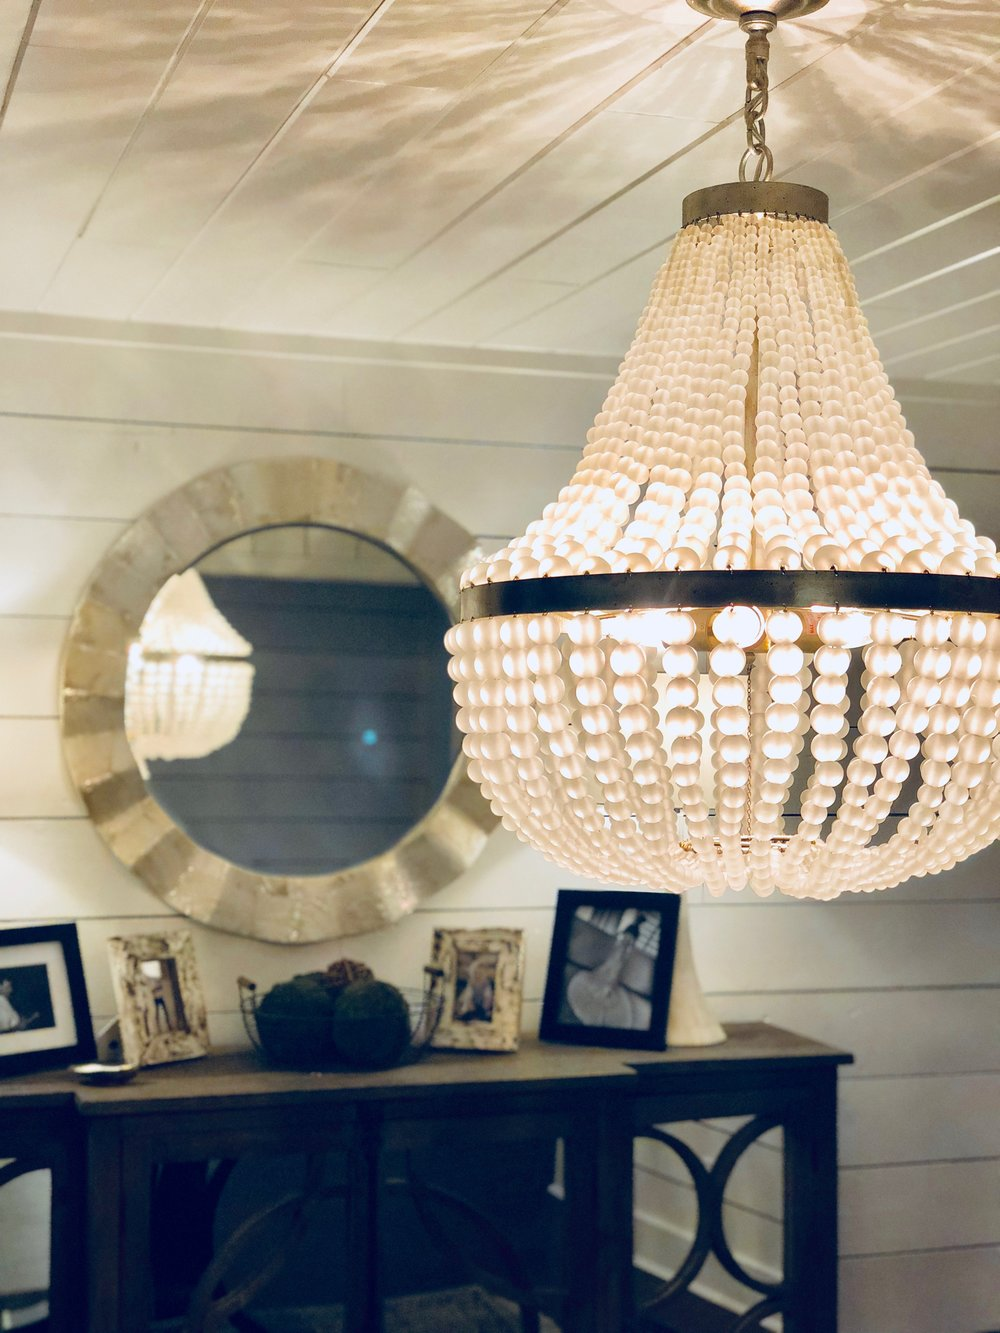 """Last summer my friend Kelly Caron, an awesome local designer, helped me re-imagine our dining room. We chose this chandelier for the center of the room and I can honestly say it's the most """"adult"""" thing I've ever bought. Brian was hysterically laughing because I told him I finally felt like an adult after installing the thing. He was like, """"I mean...married with kids is pretty adult"""". Ha!It's the perfect amount of fancy and I feel blessed to have it."""